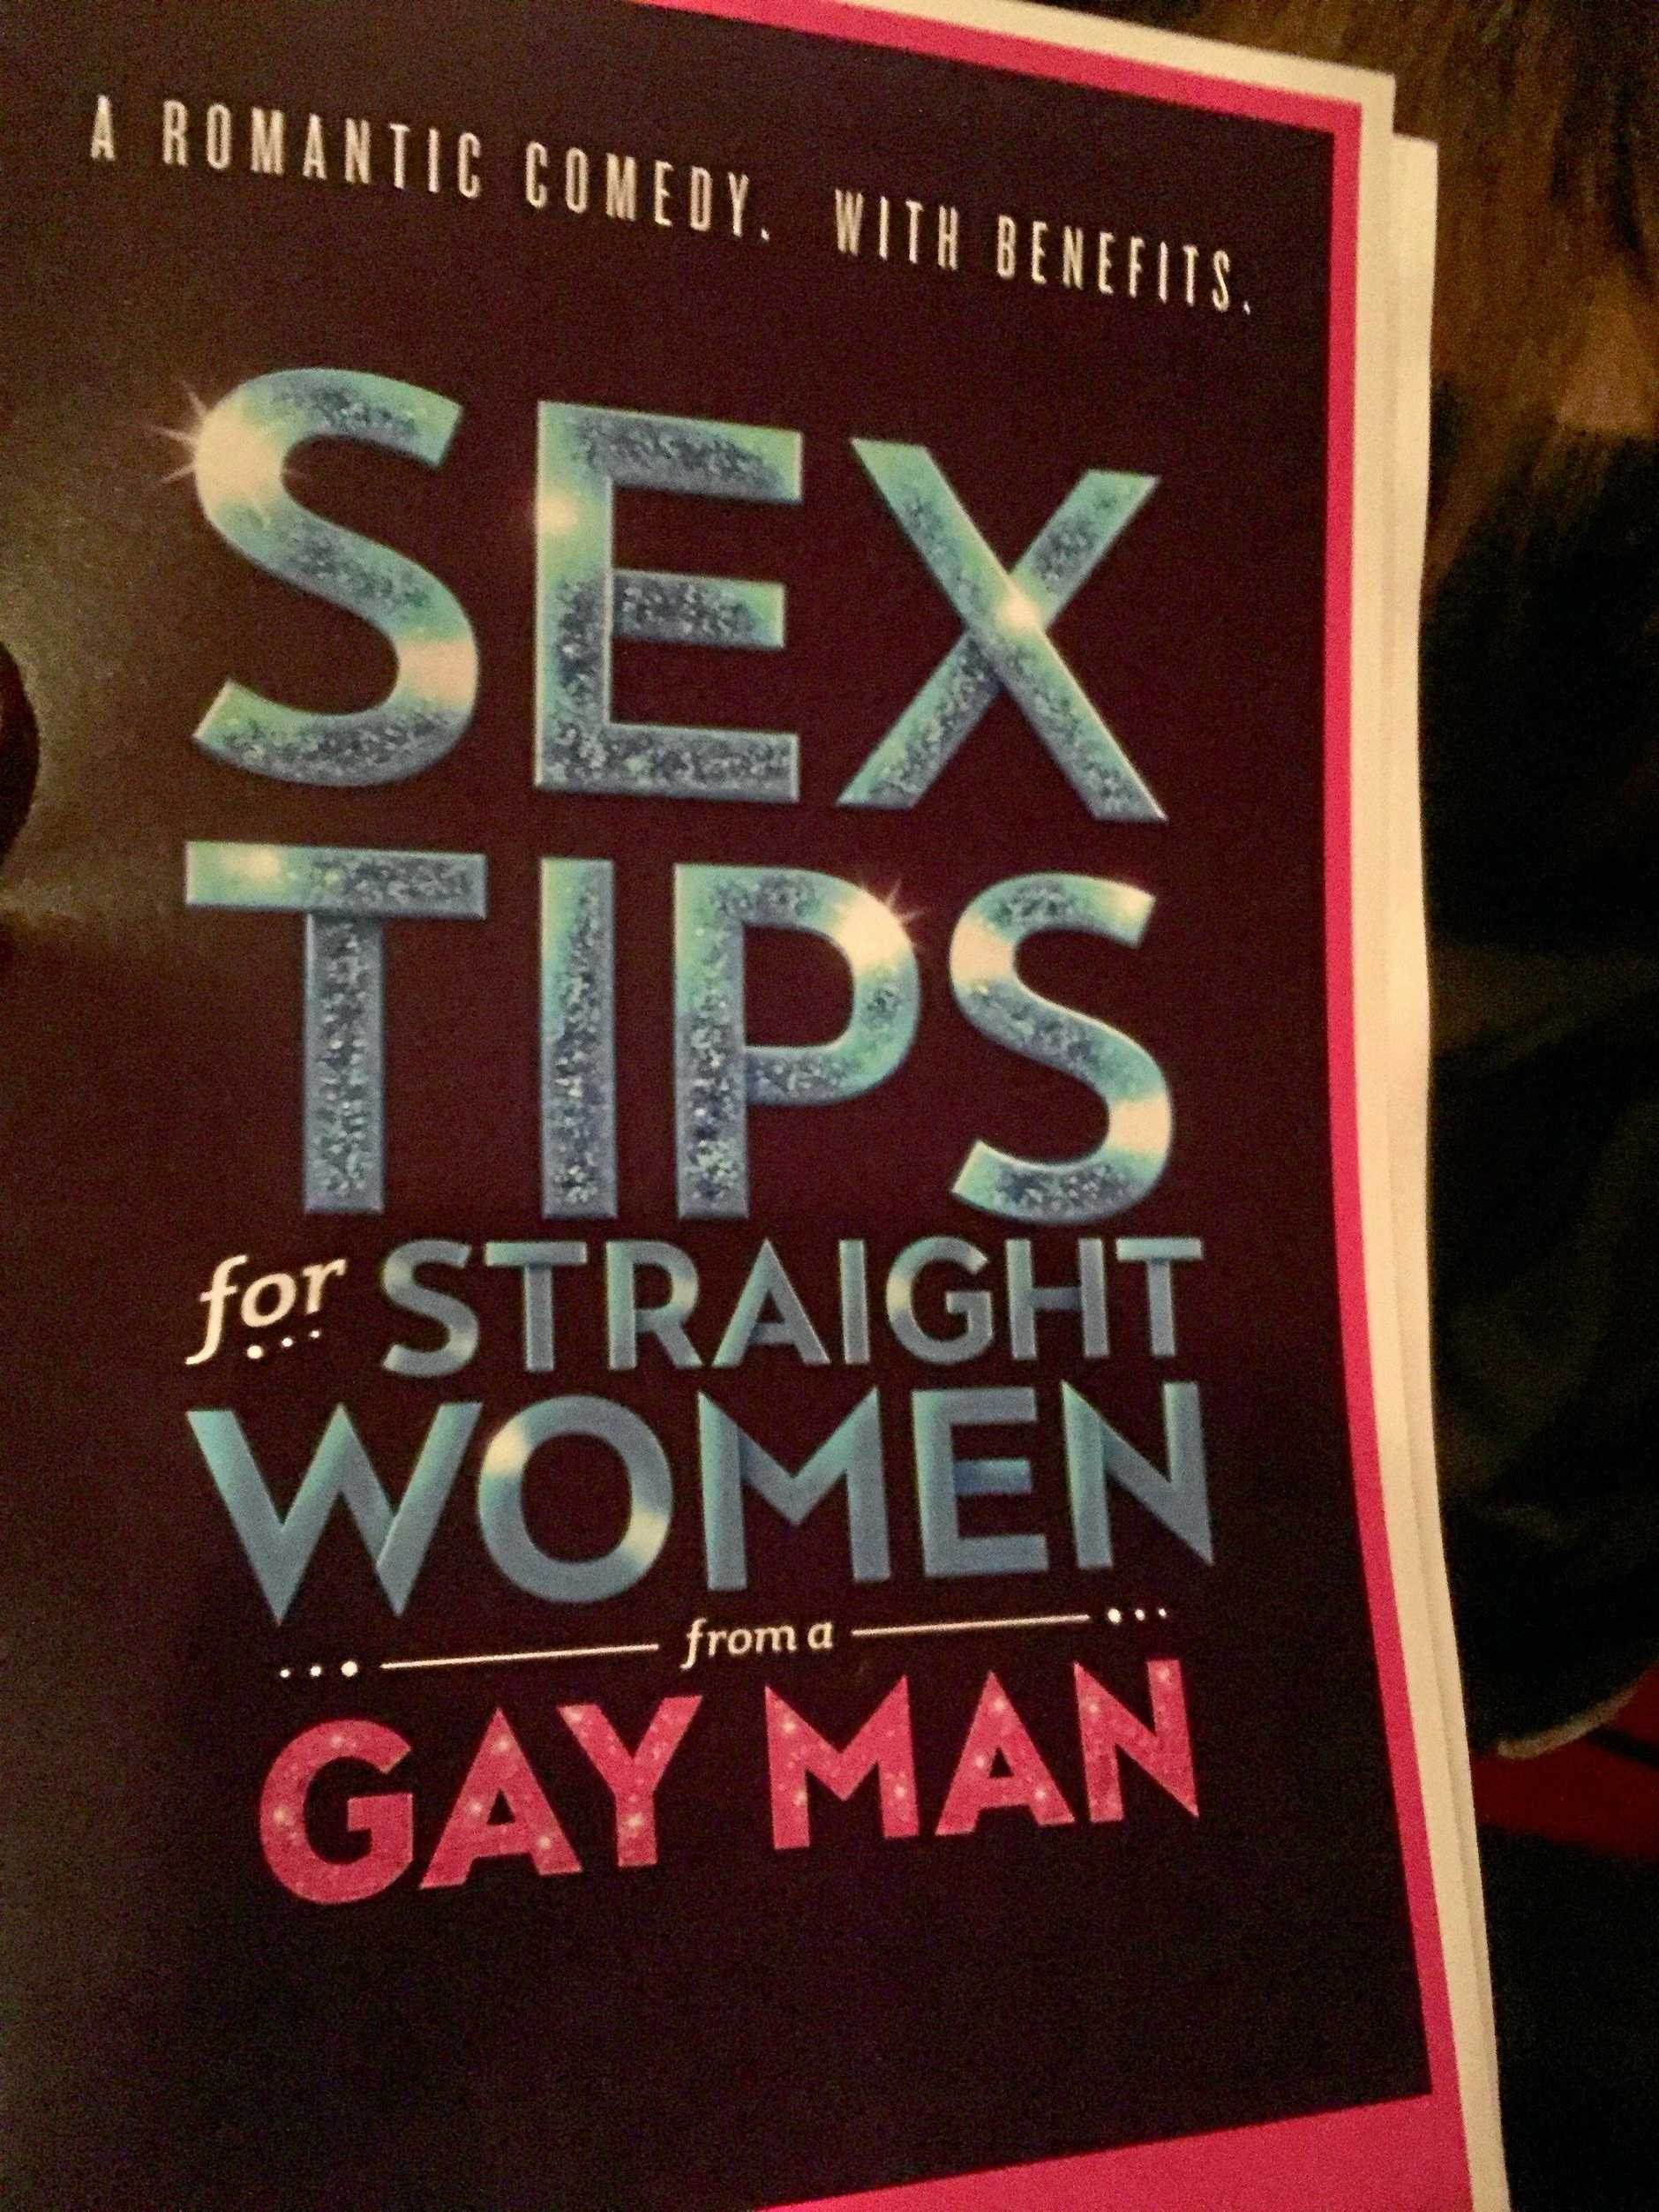 The laughs are assured at Sex Tips for Straight Women from a Gay Man.